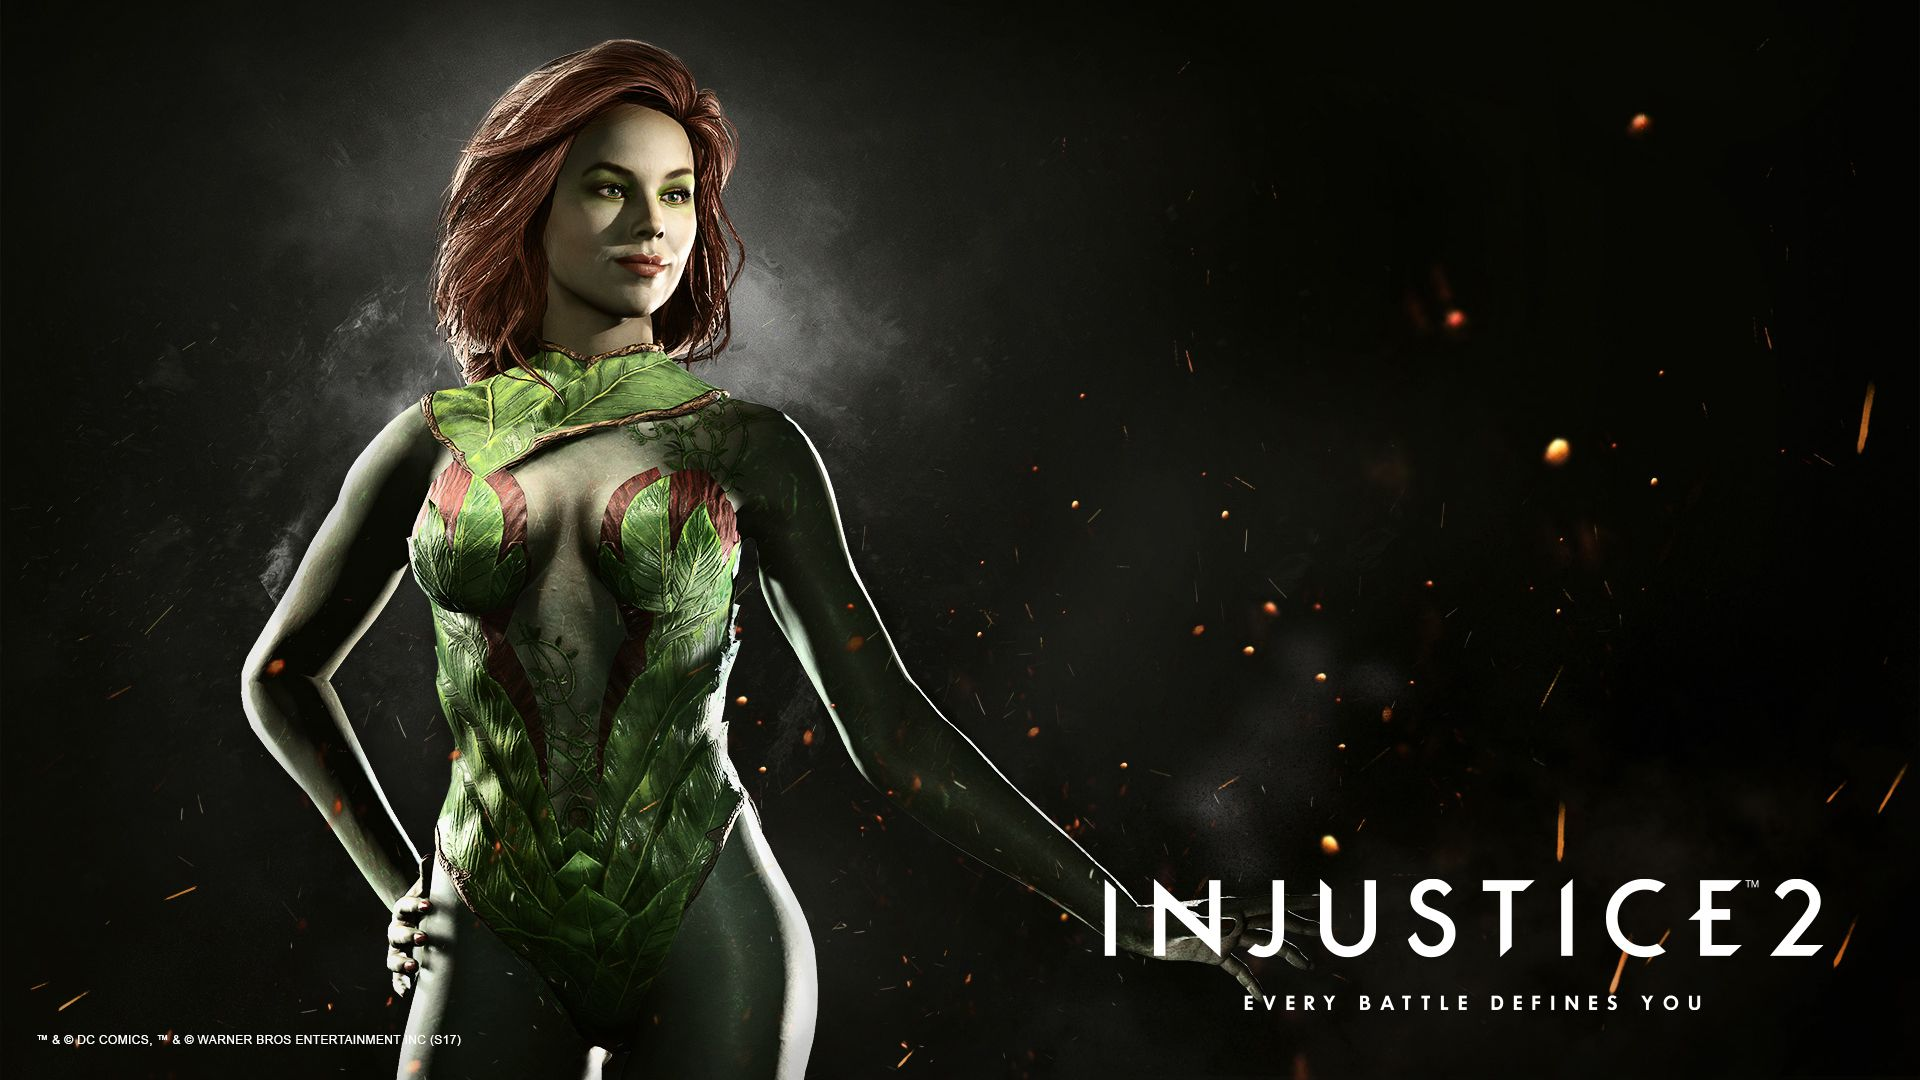 Pamela Isley (Injustice)